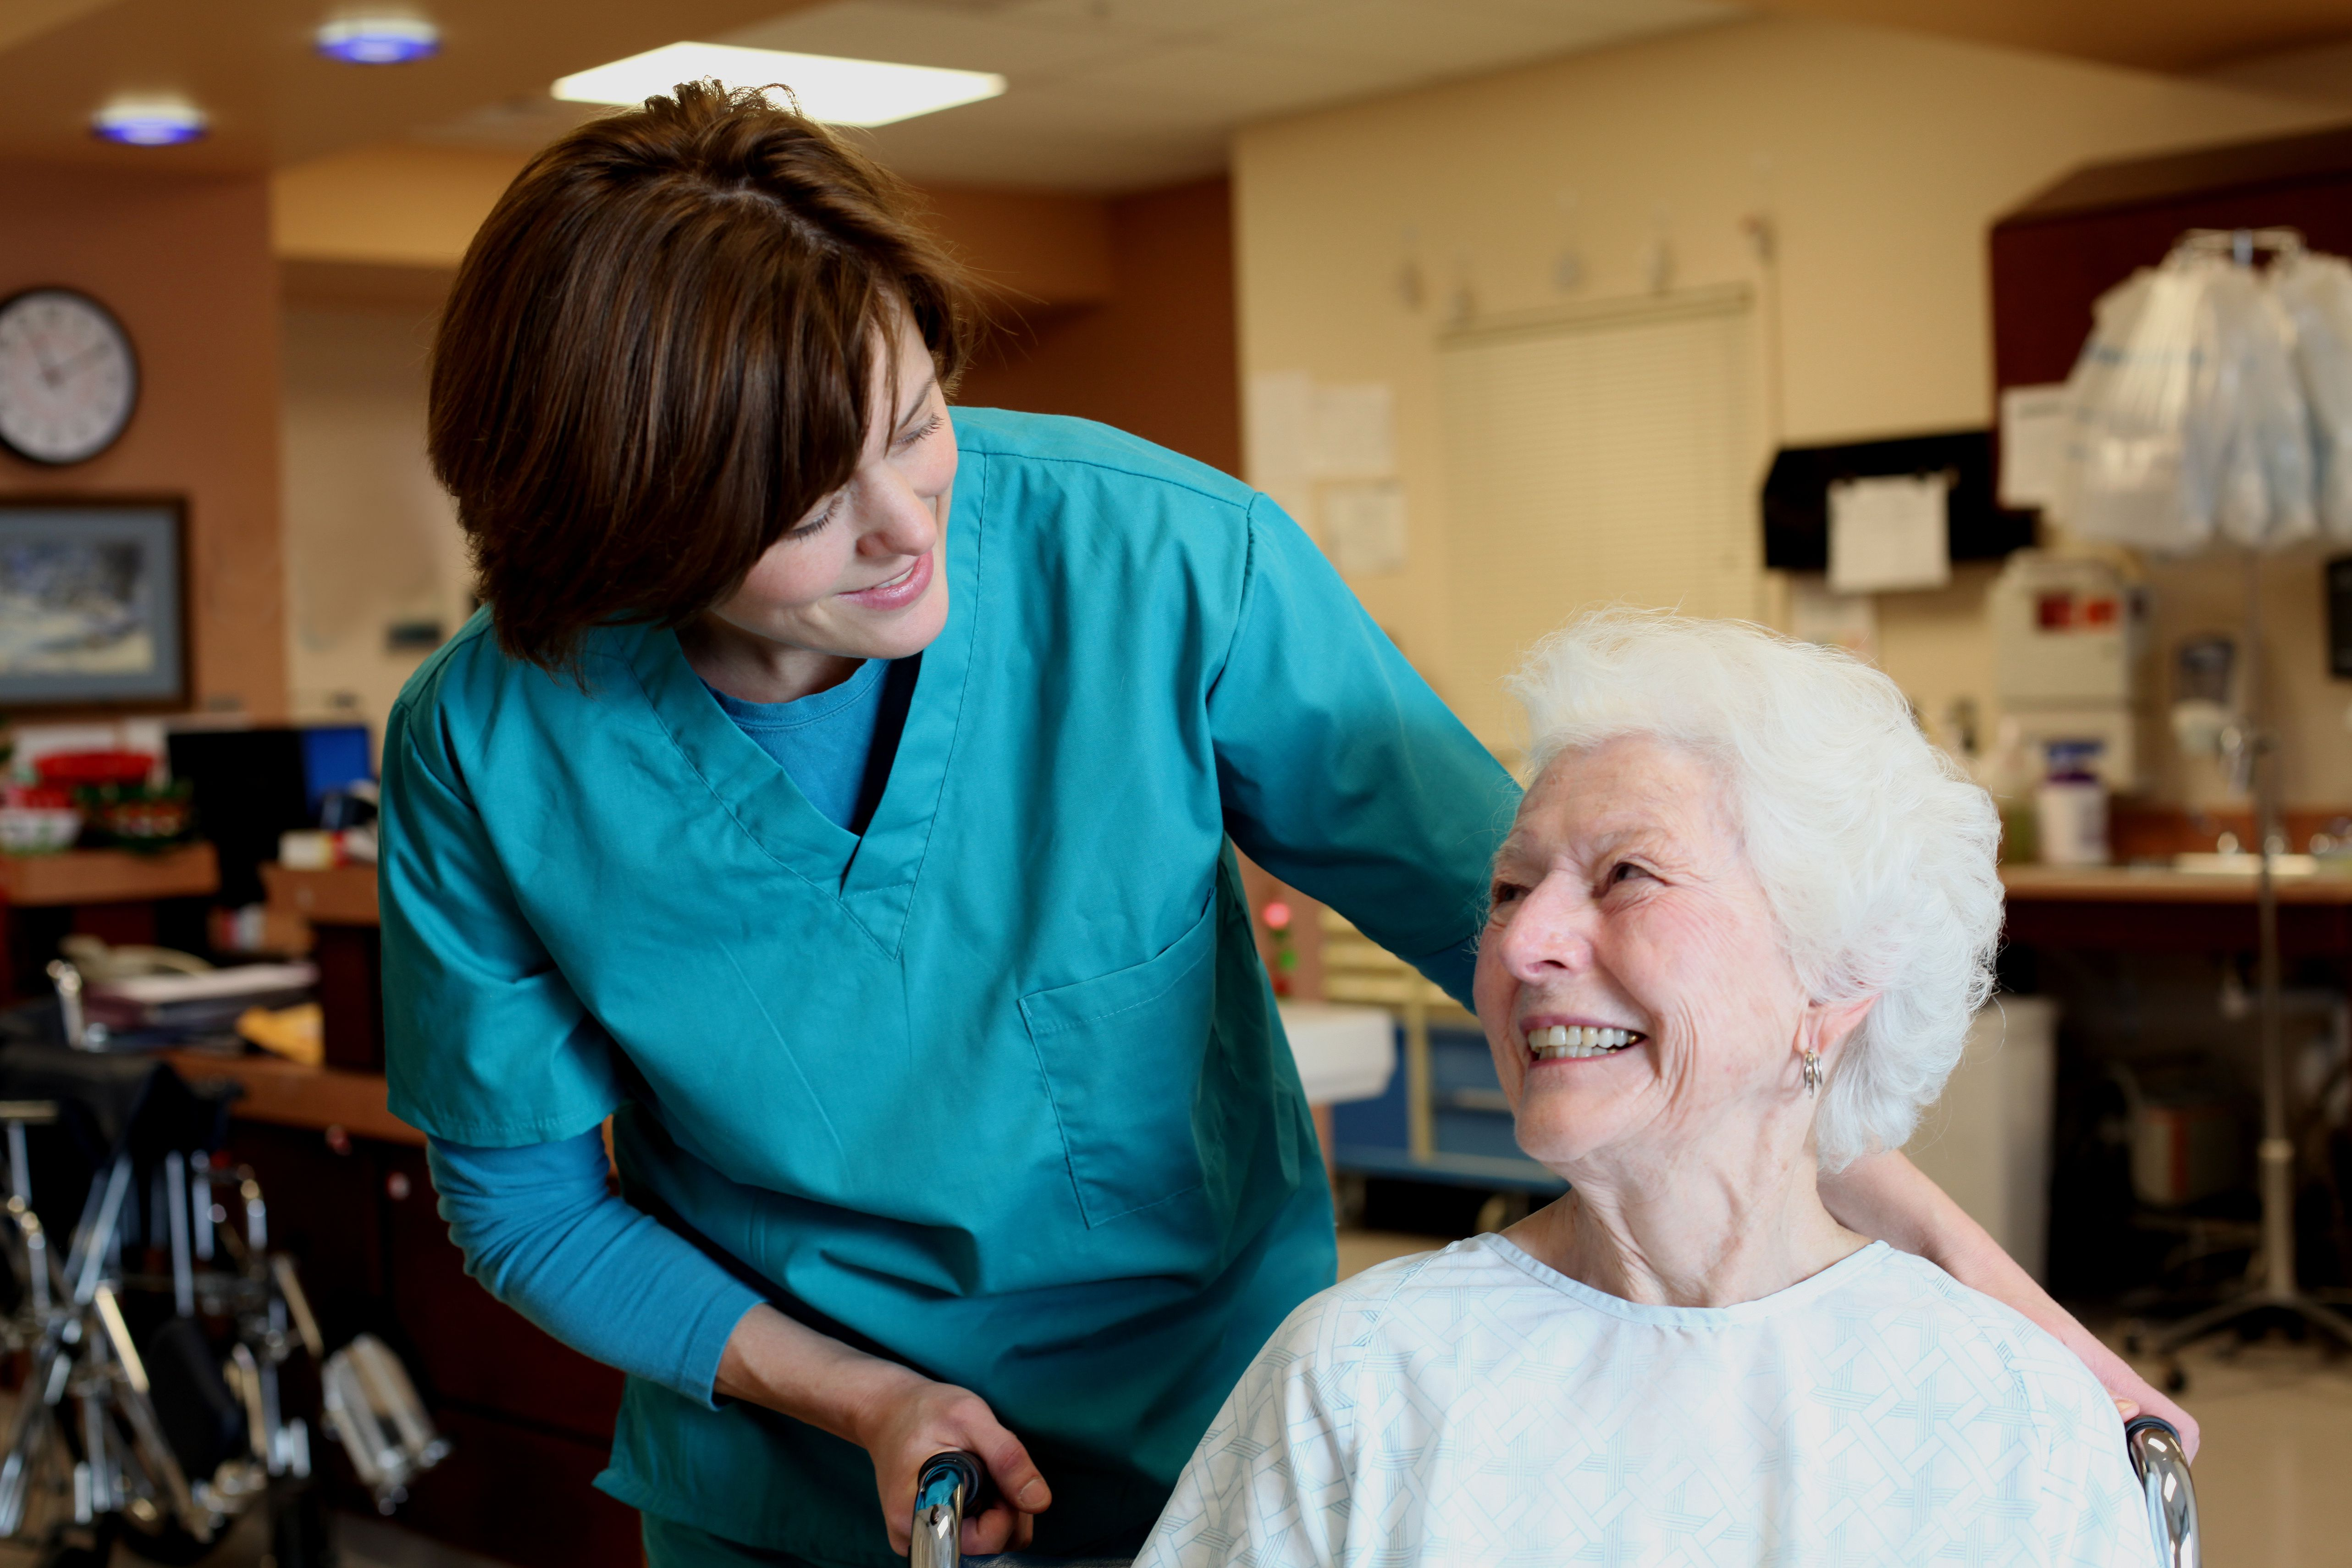 Occupational Therapy Aide Career Information